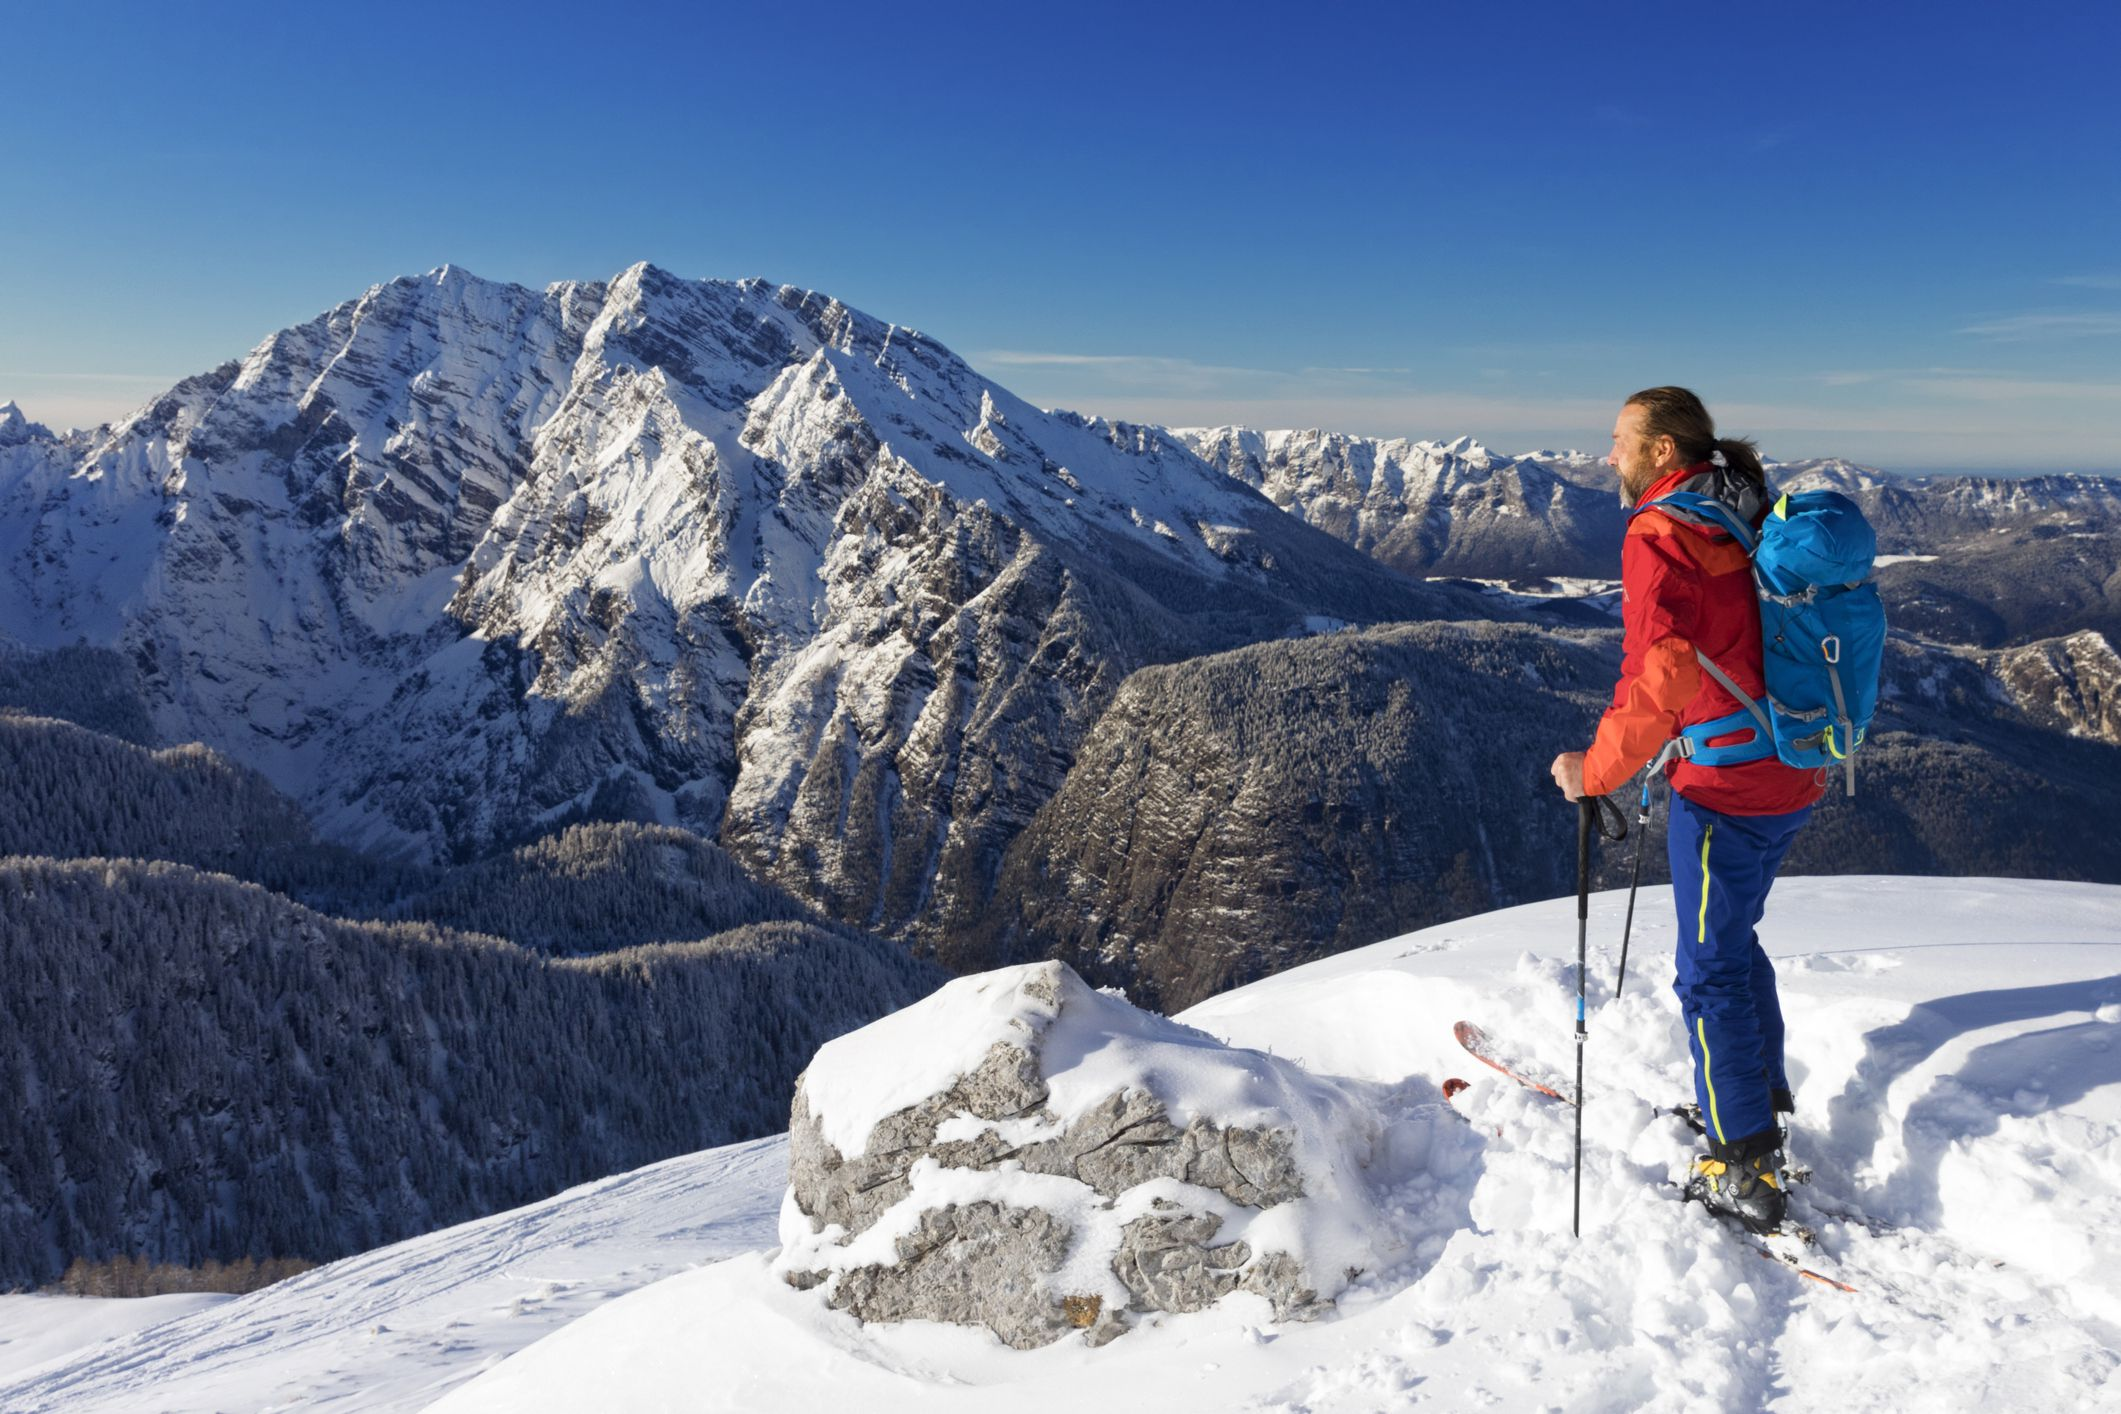 The 8 Best All-Mountain Skis